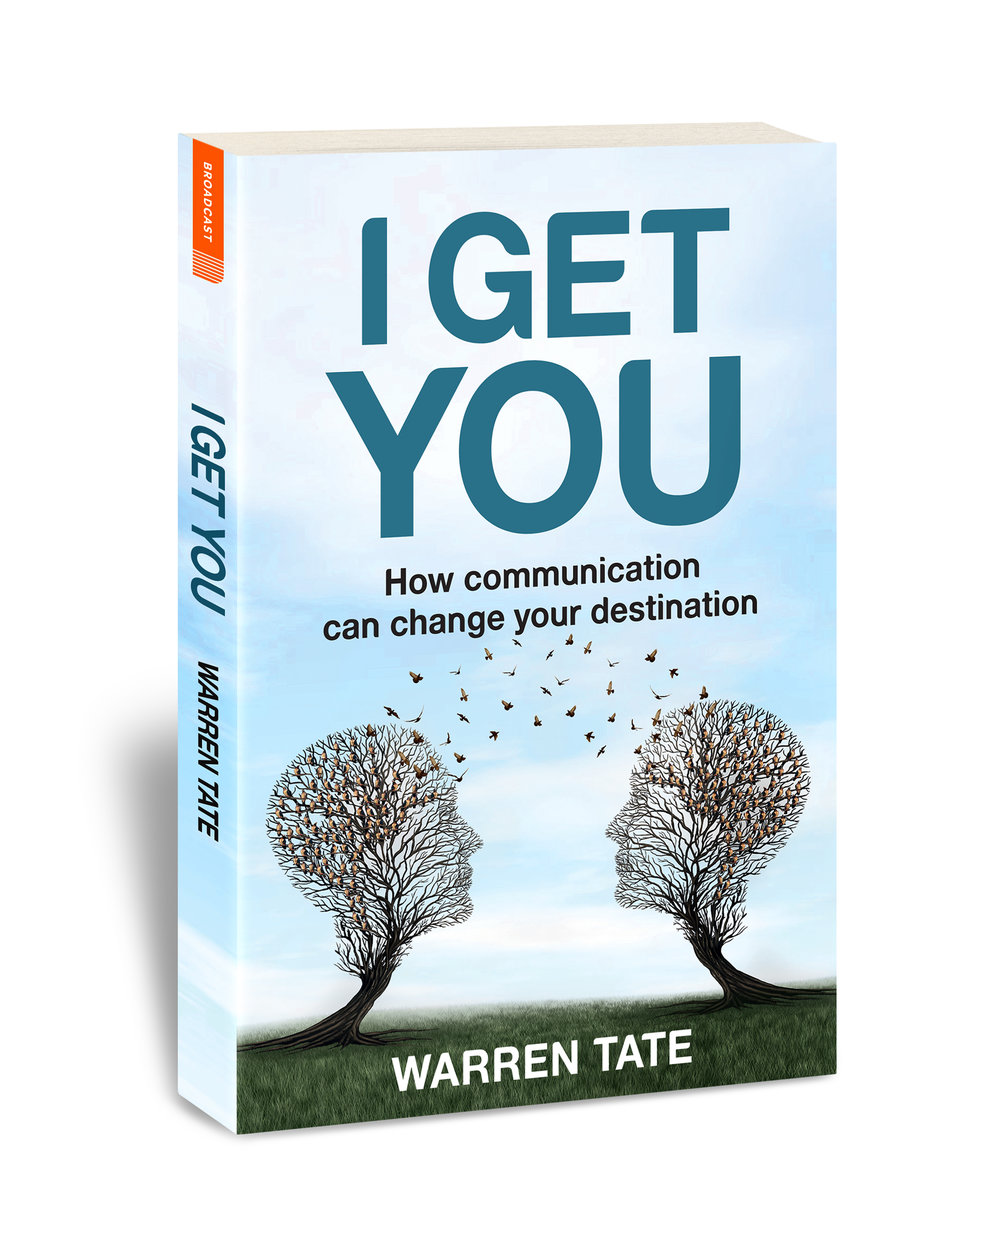 I GET YOU written by Warren Tate, edited by Bernadette Foley, proofread by Carolyn Page, text designed by Liz Seymour, produced by Broadcast Books, 2017